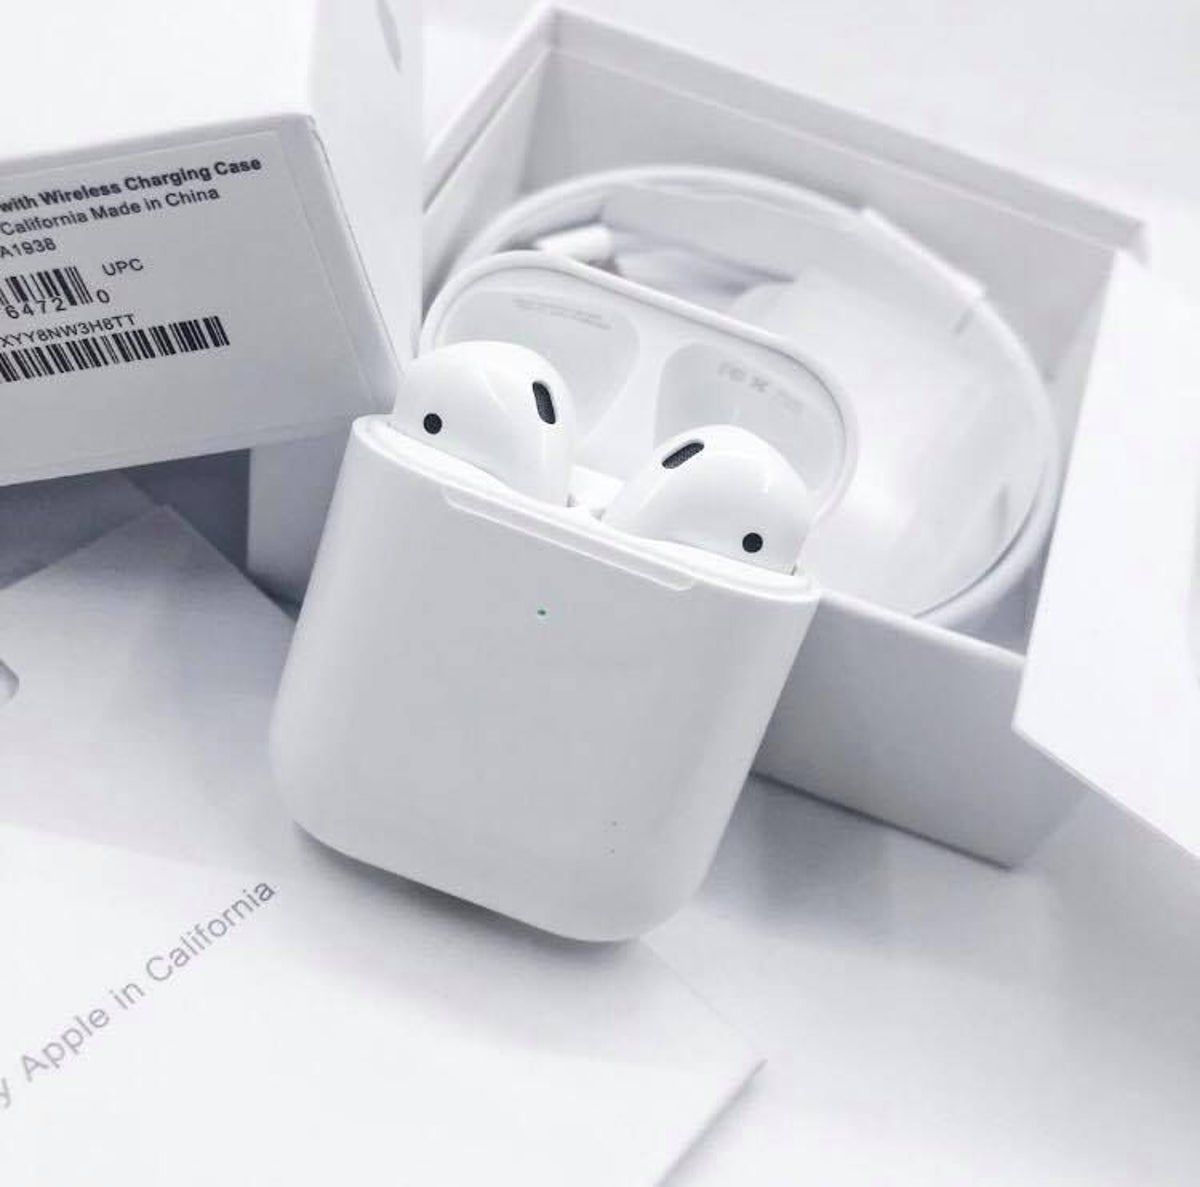 Apple Airpods 2nd Generation Apple Airpods 2 Iphone Earbuds Apple Products